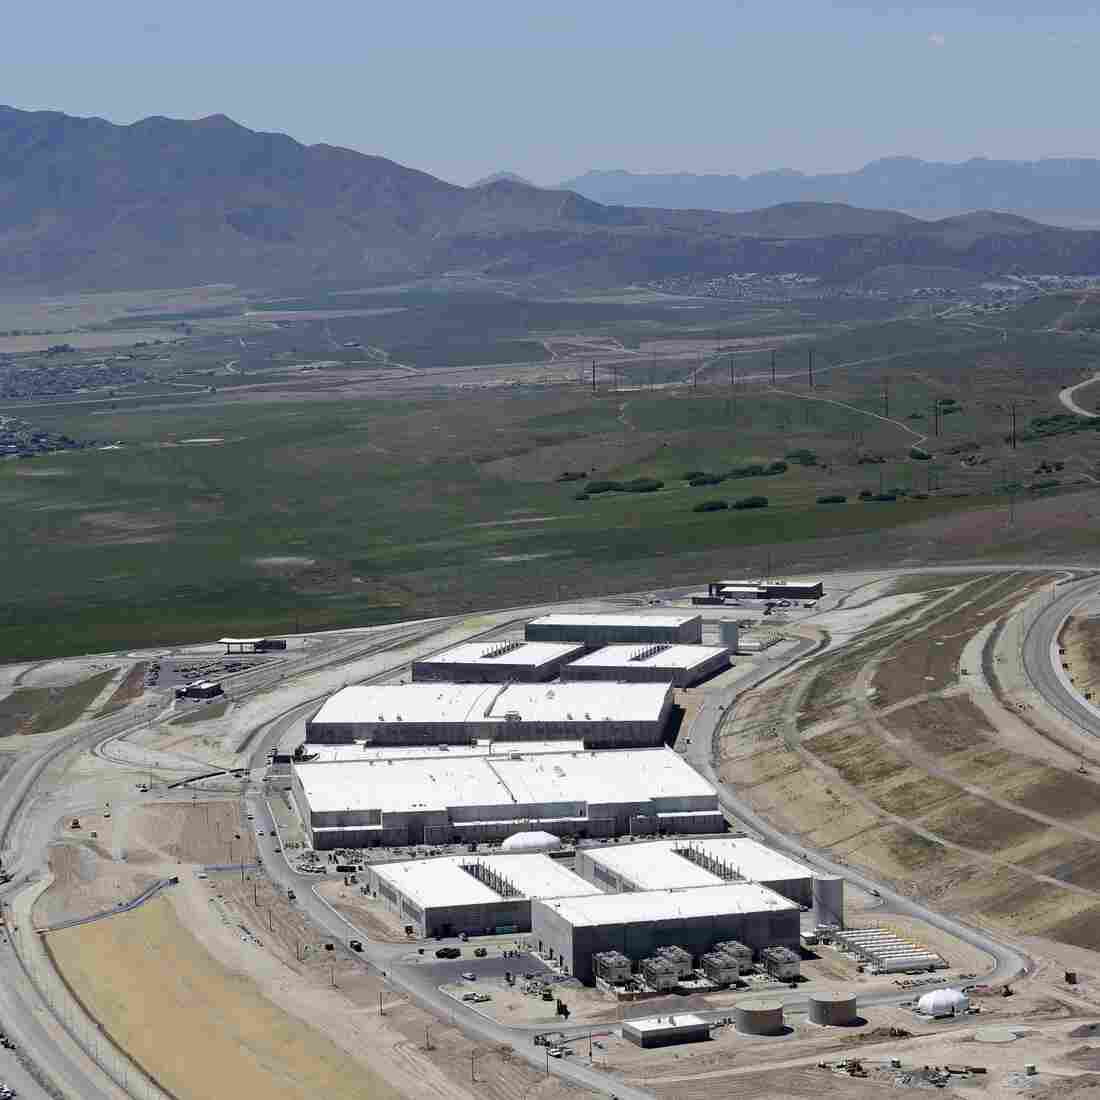 The National Security Agency says its massive new data center near Salt Lake City will enhance the agency's ability to analyze the email, text message, cellphone and landline metadata it collects.